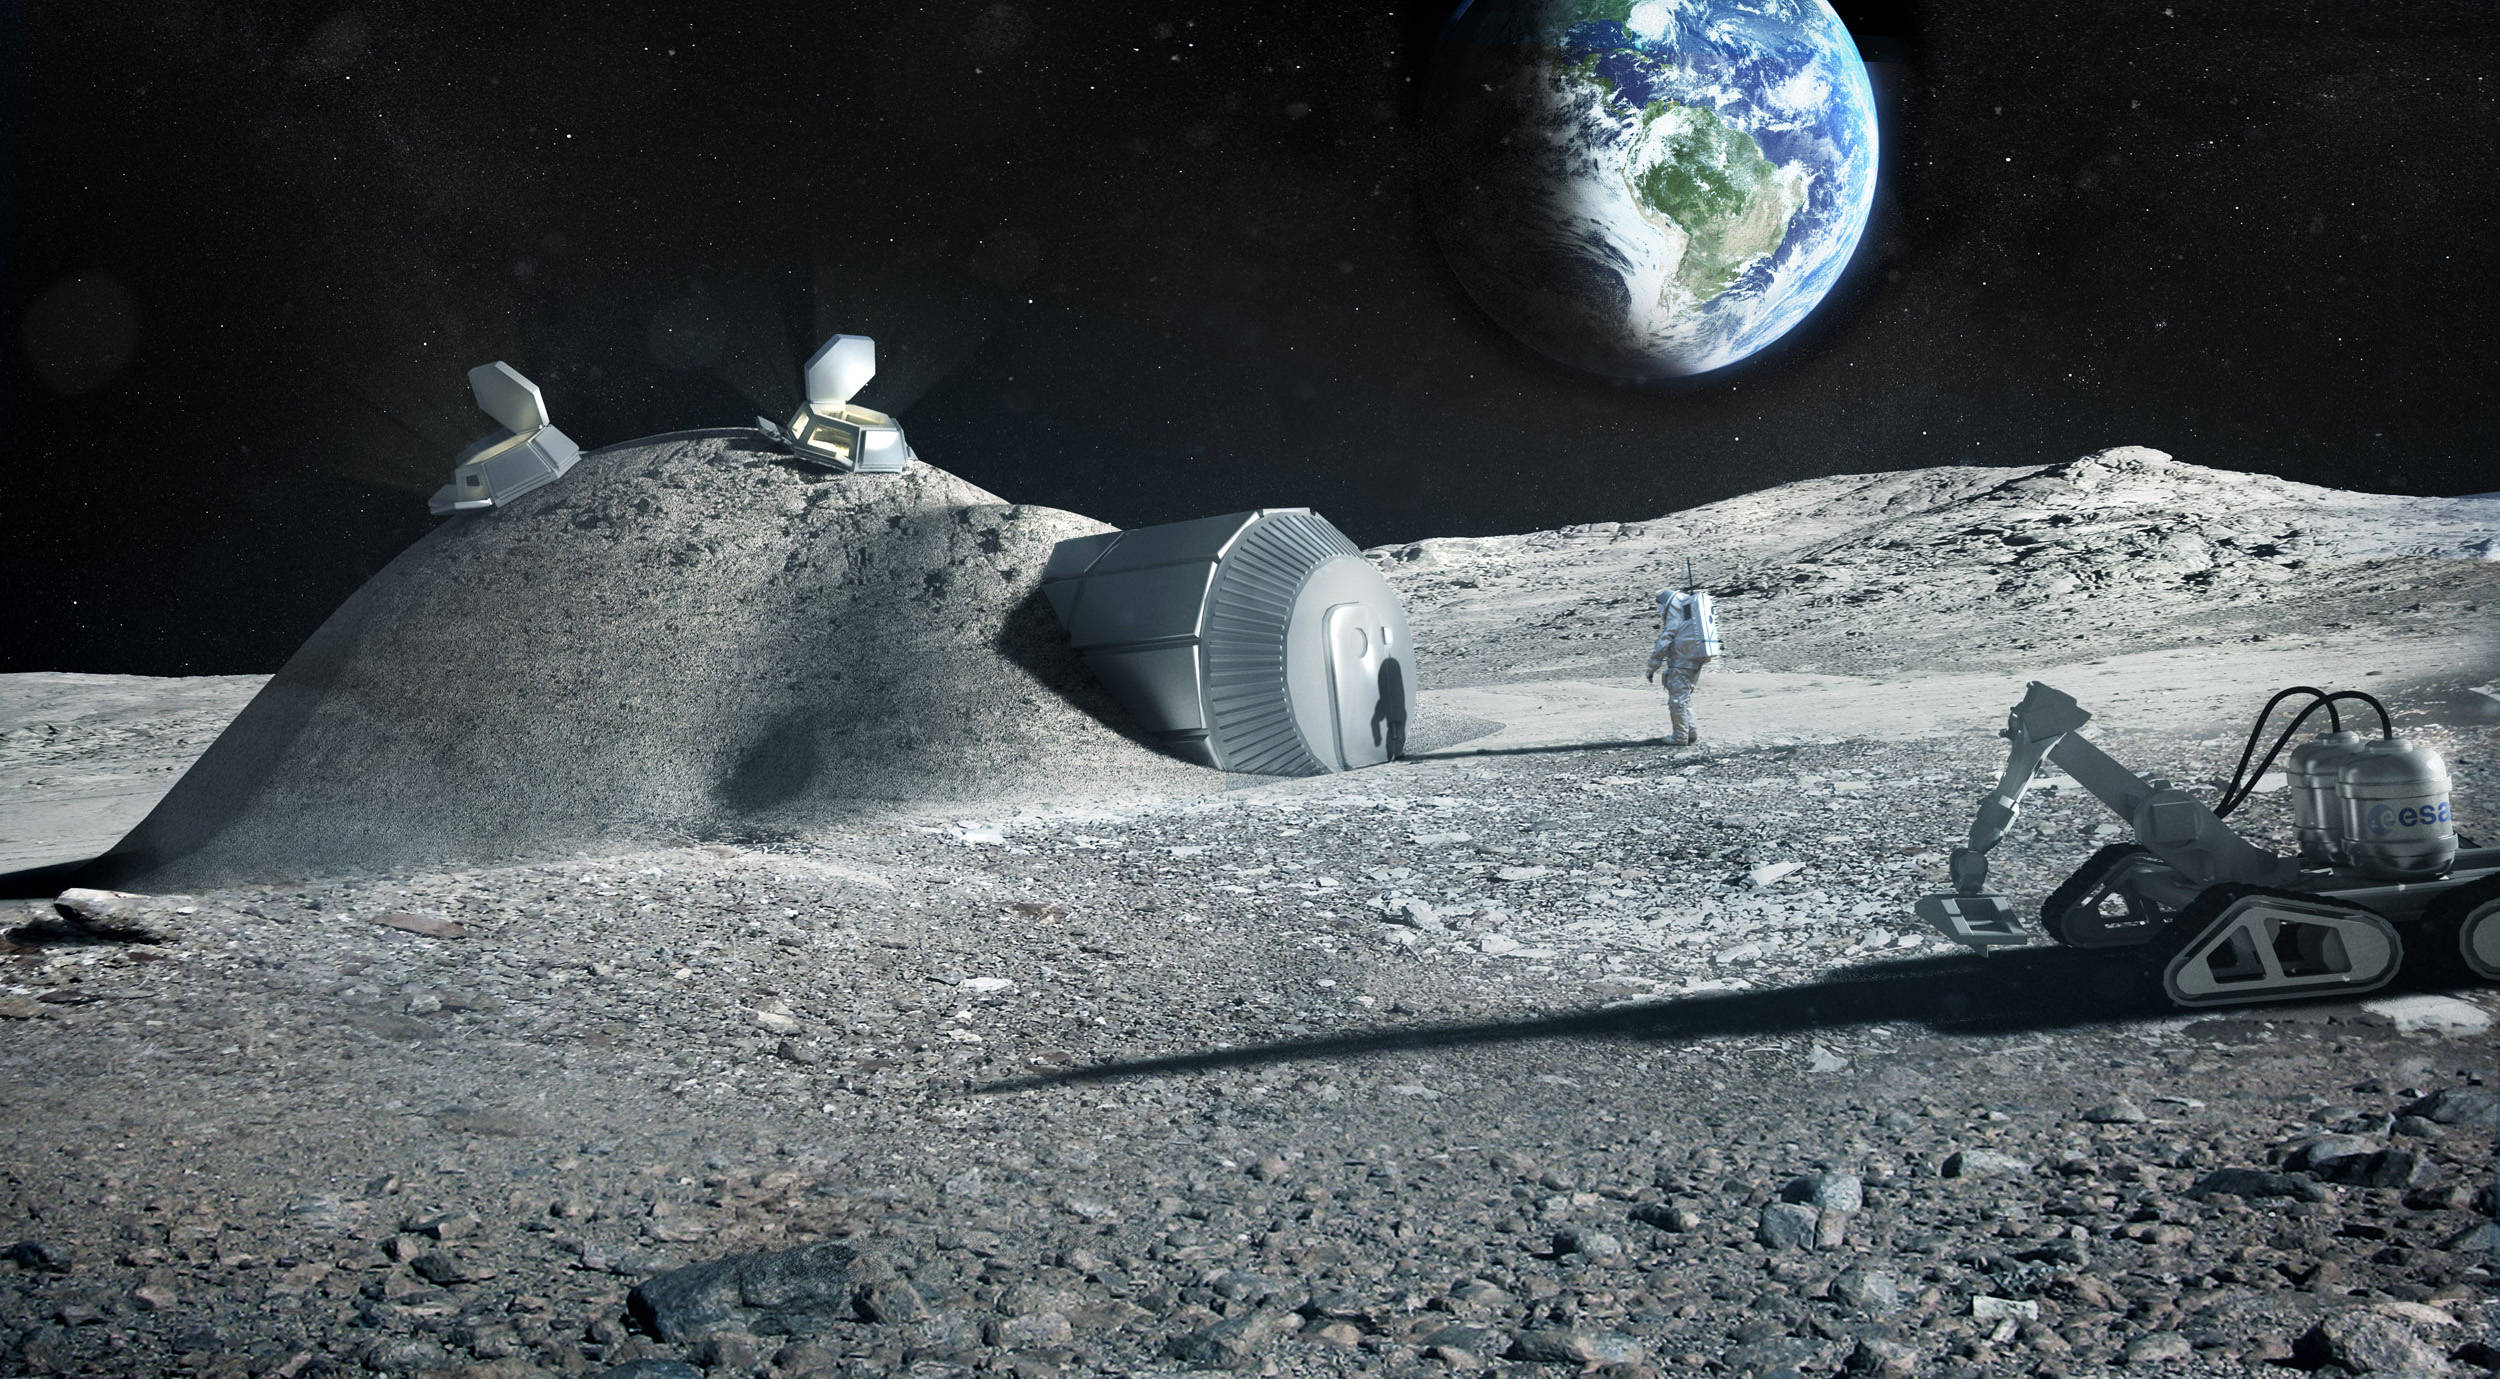 Are you extracting the urine, ESA? Why, yes it is, from Moon dwellers to build homes out of lunar regolith. Possibly - The Register